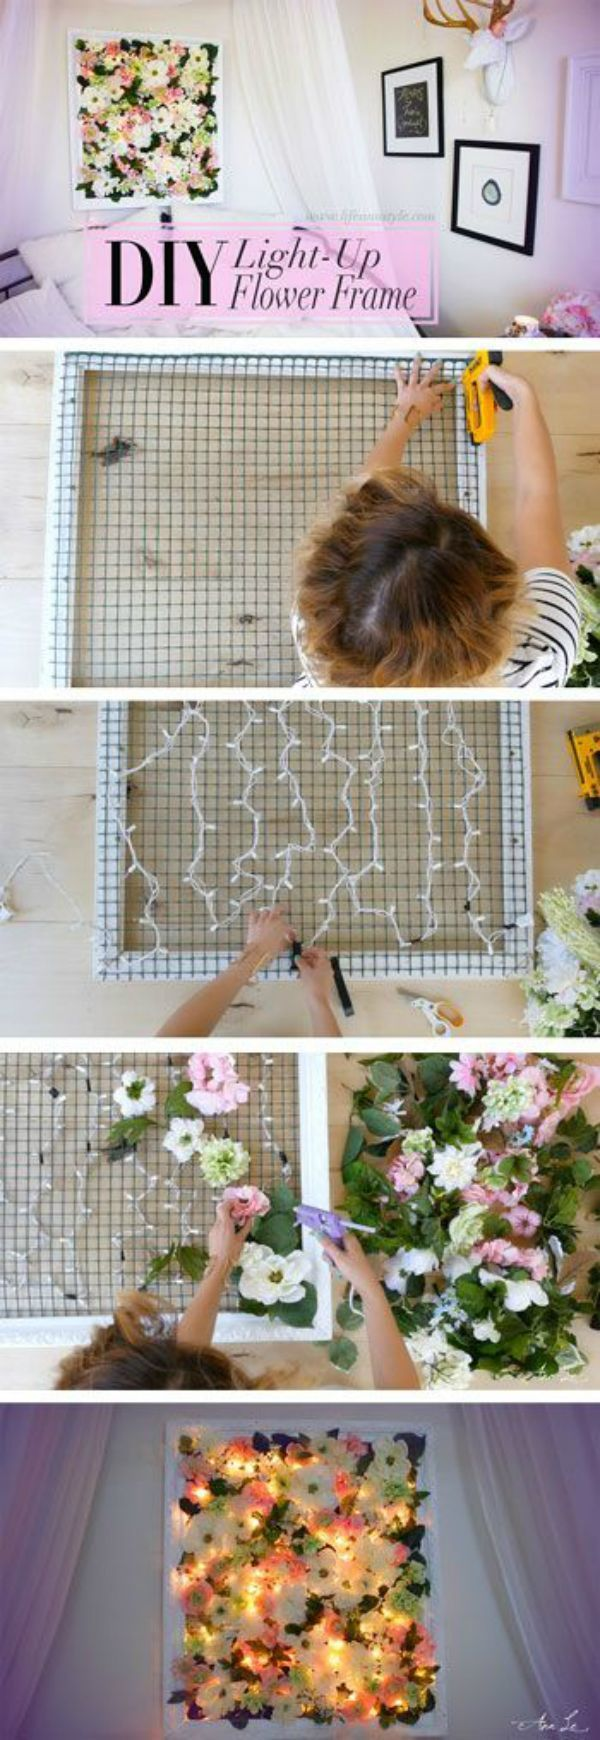 Cheap Bedroom Decor Ideas: DIY Light Up Flower Frame...   Http